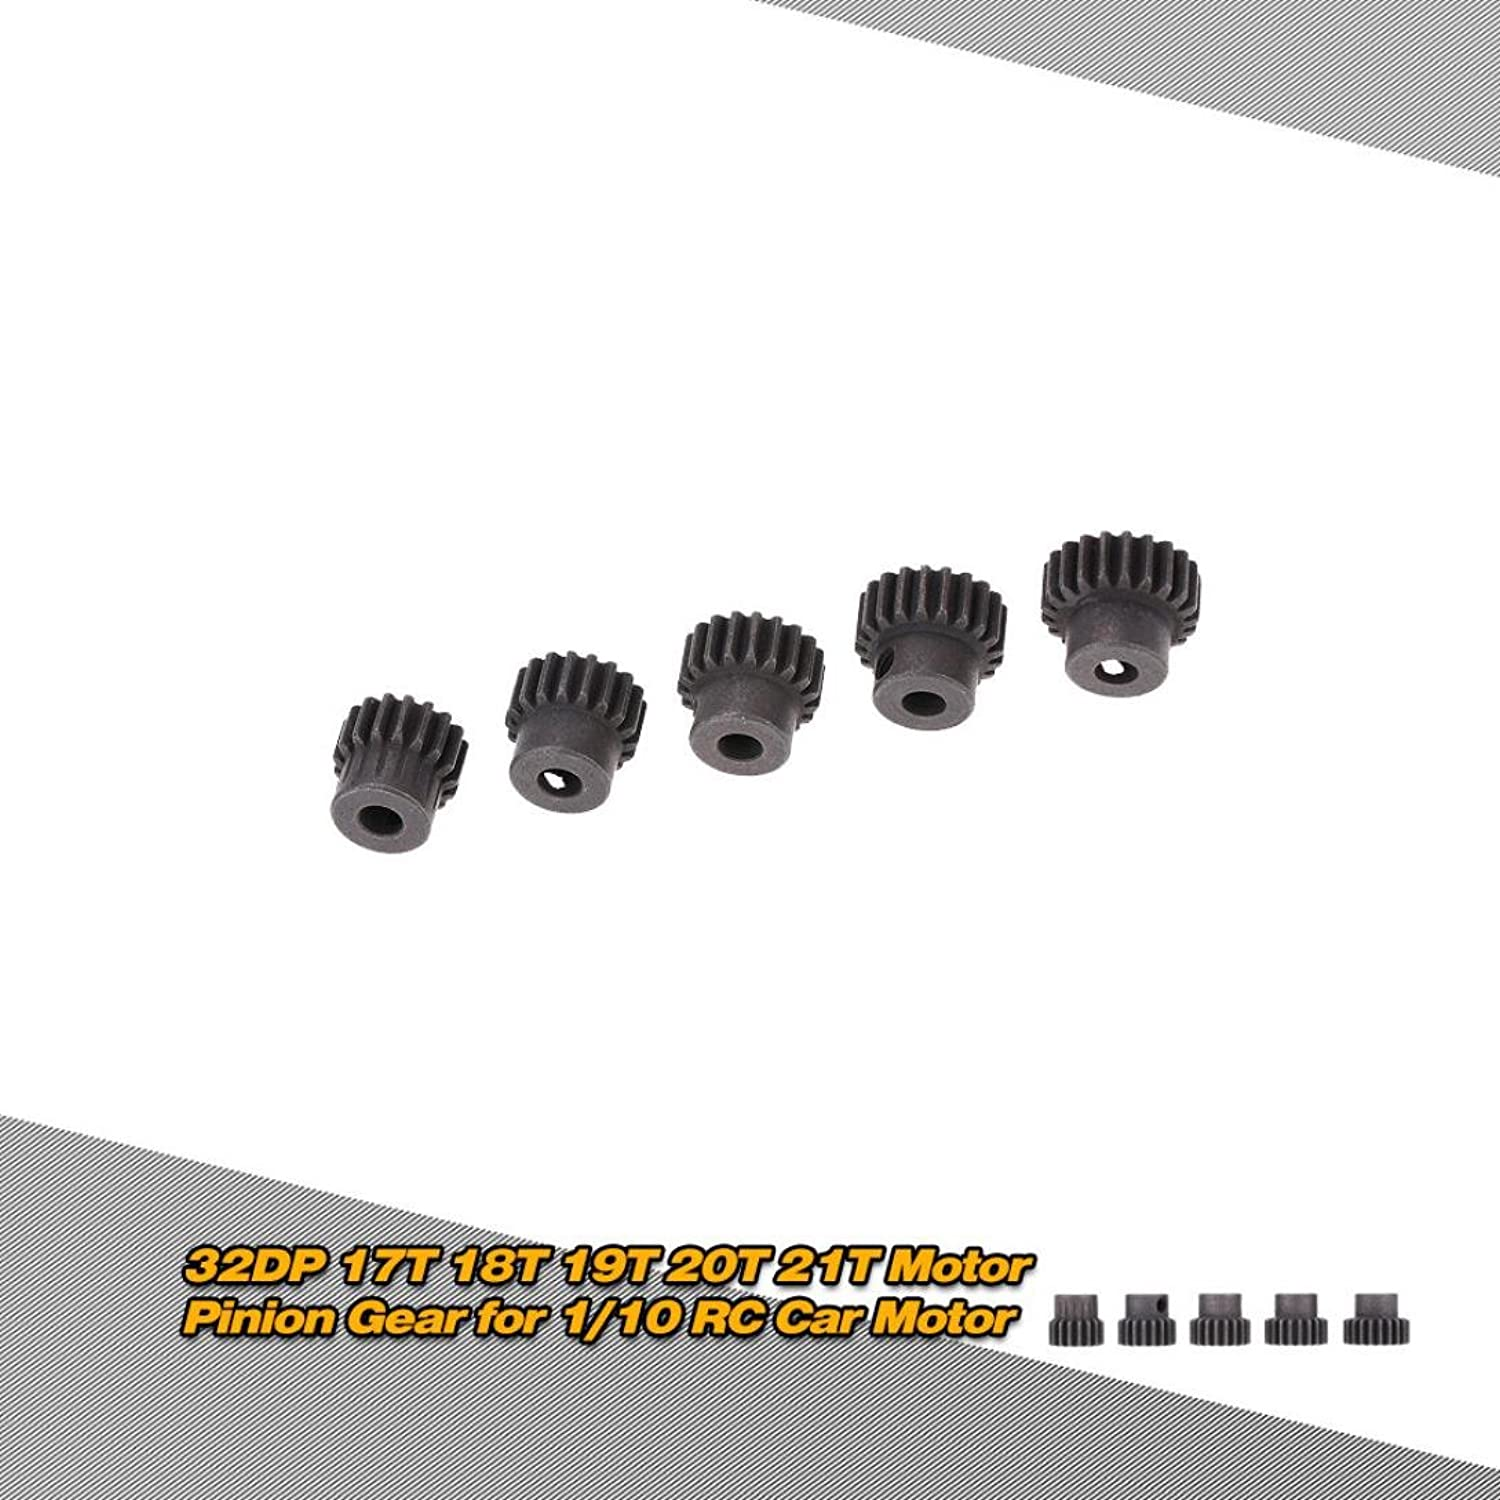 DZT1968 5pc/set GoolRC 5Pcs 32DP 5mm 17T 18T 19T 20T 21T Motor Pinion Gear for 1/10 RC Car Brushed Brushless Motor